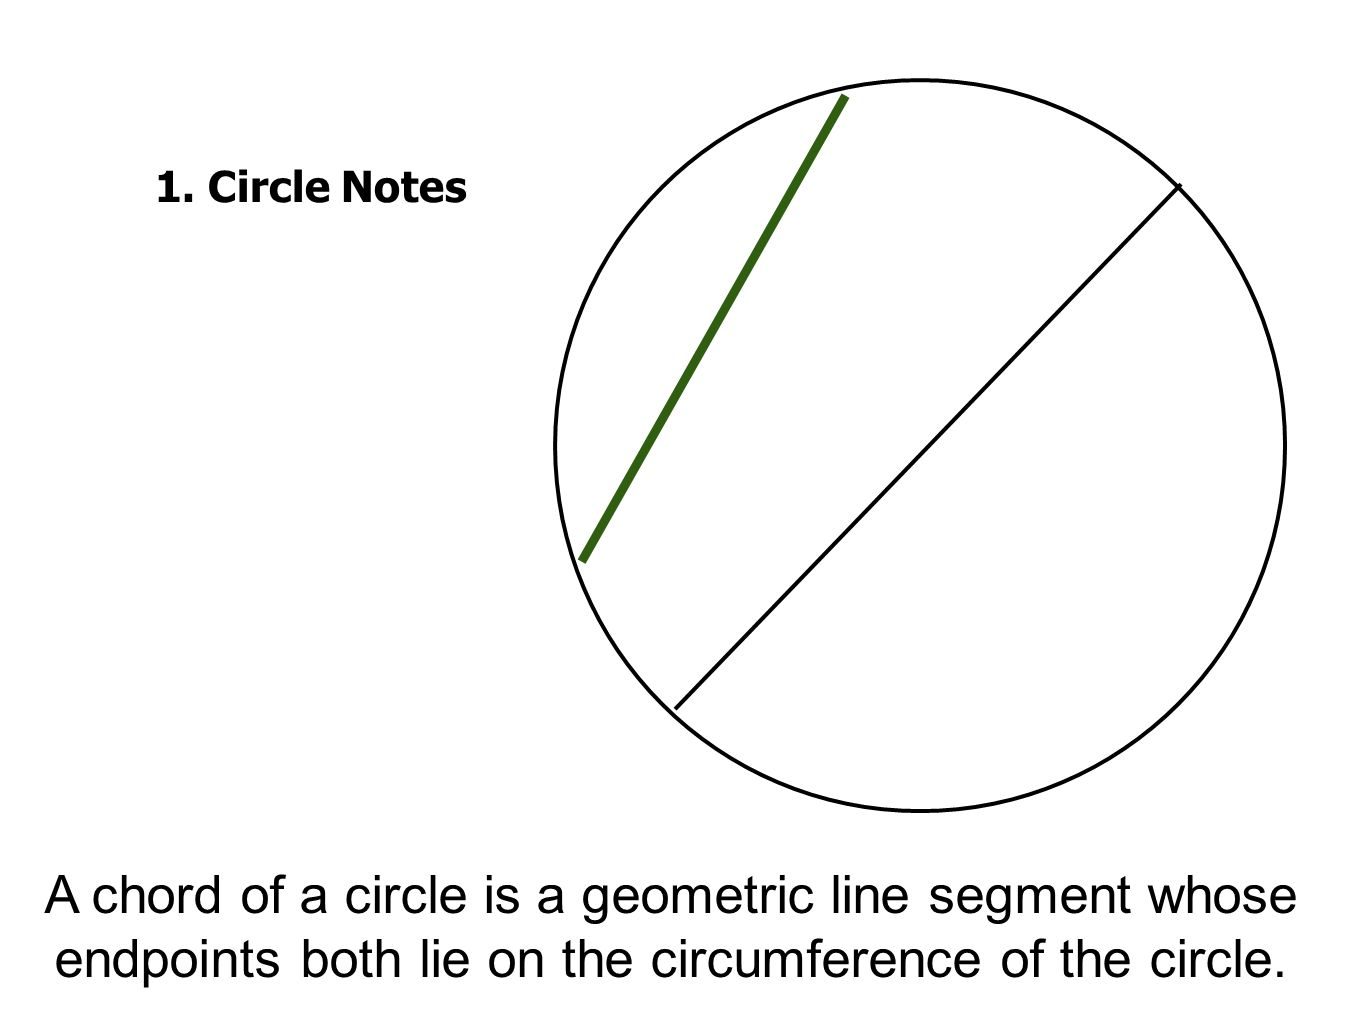 1. Circle Notes Diameter is the longest cord.